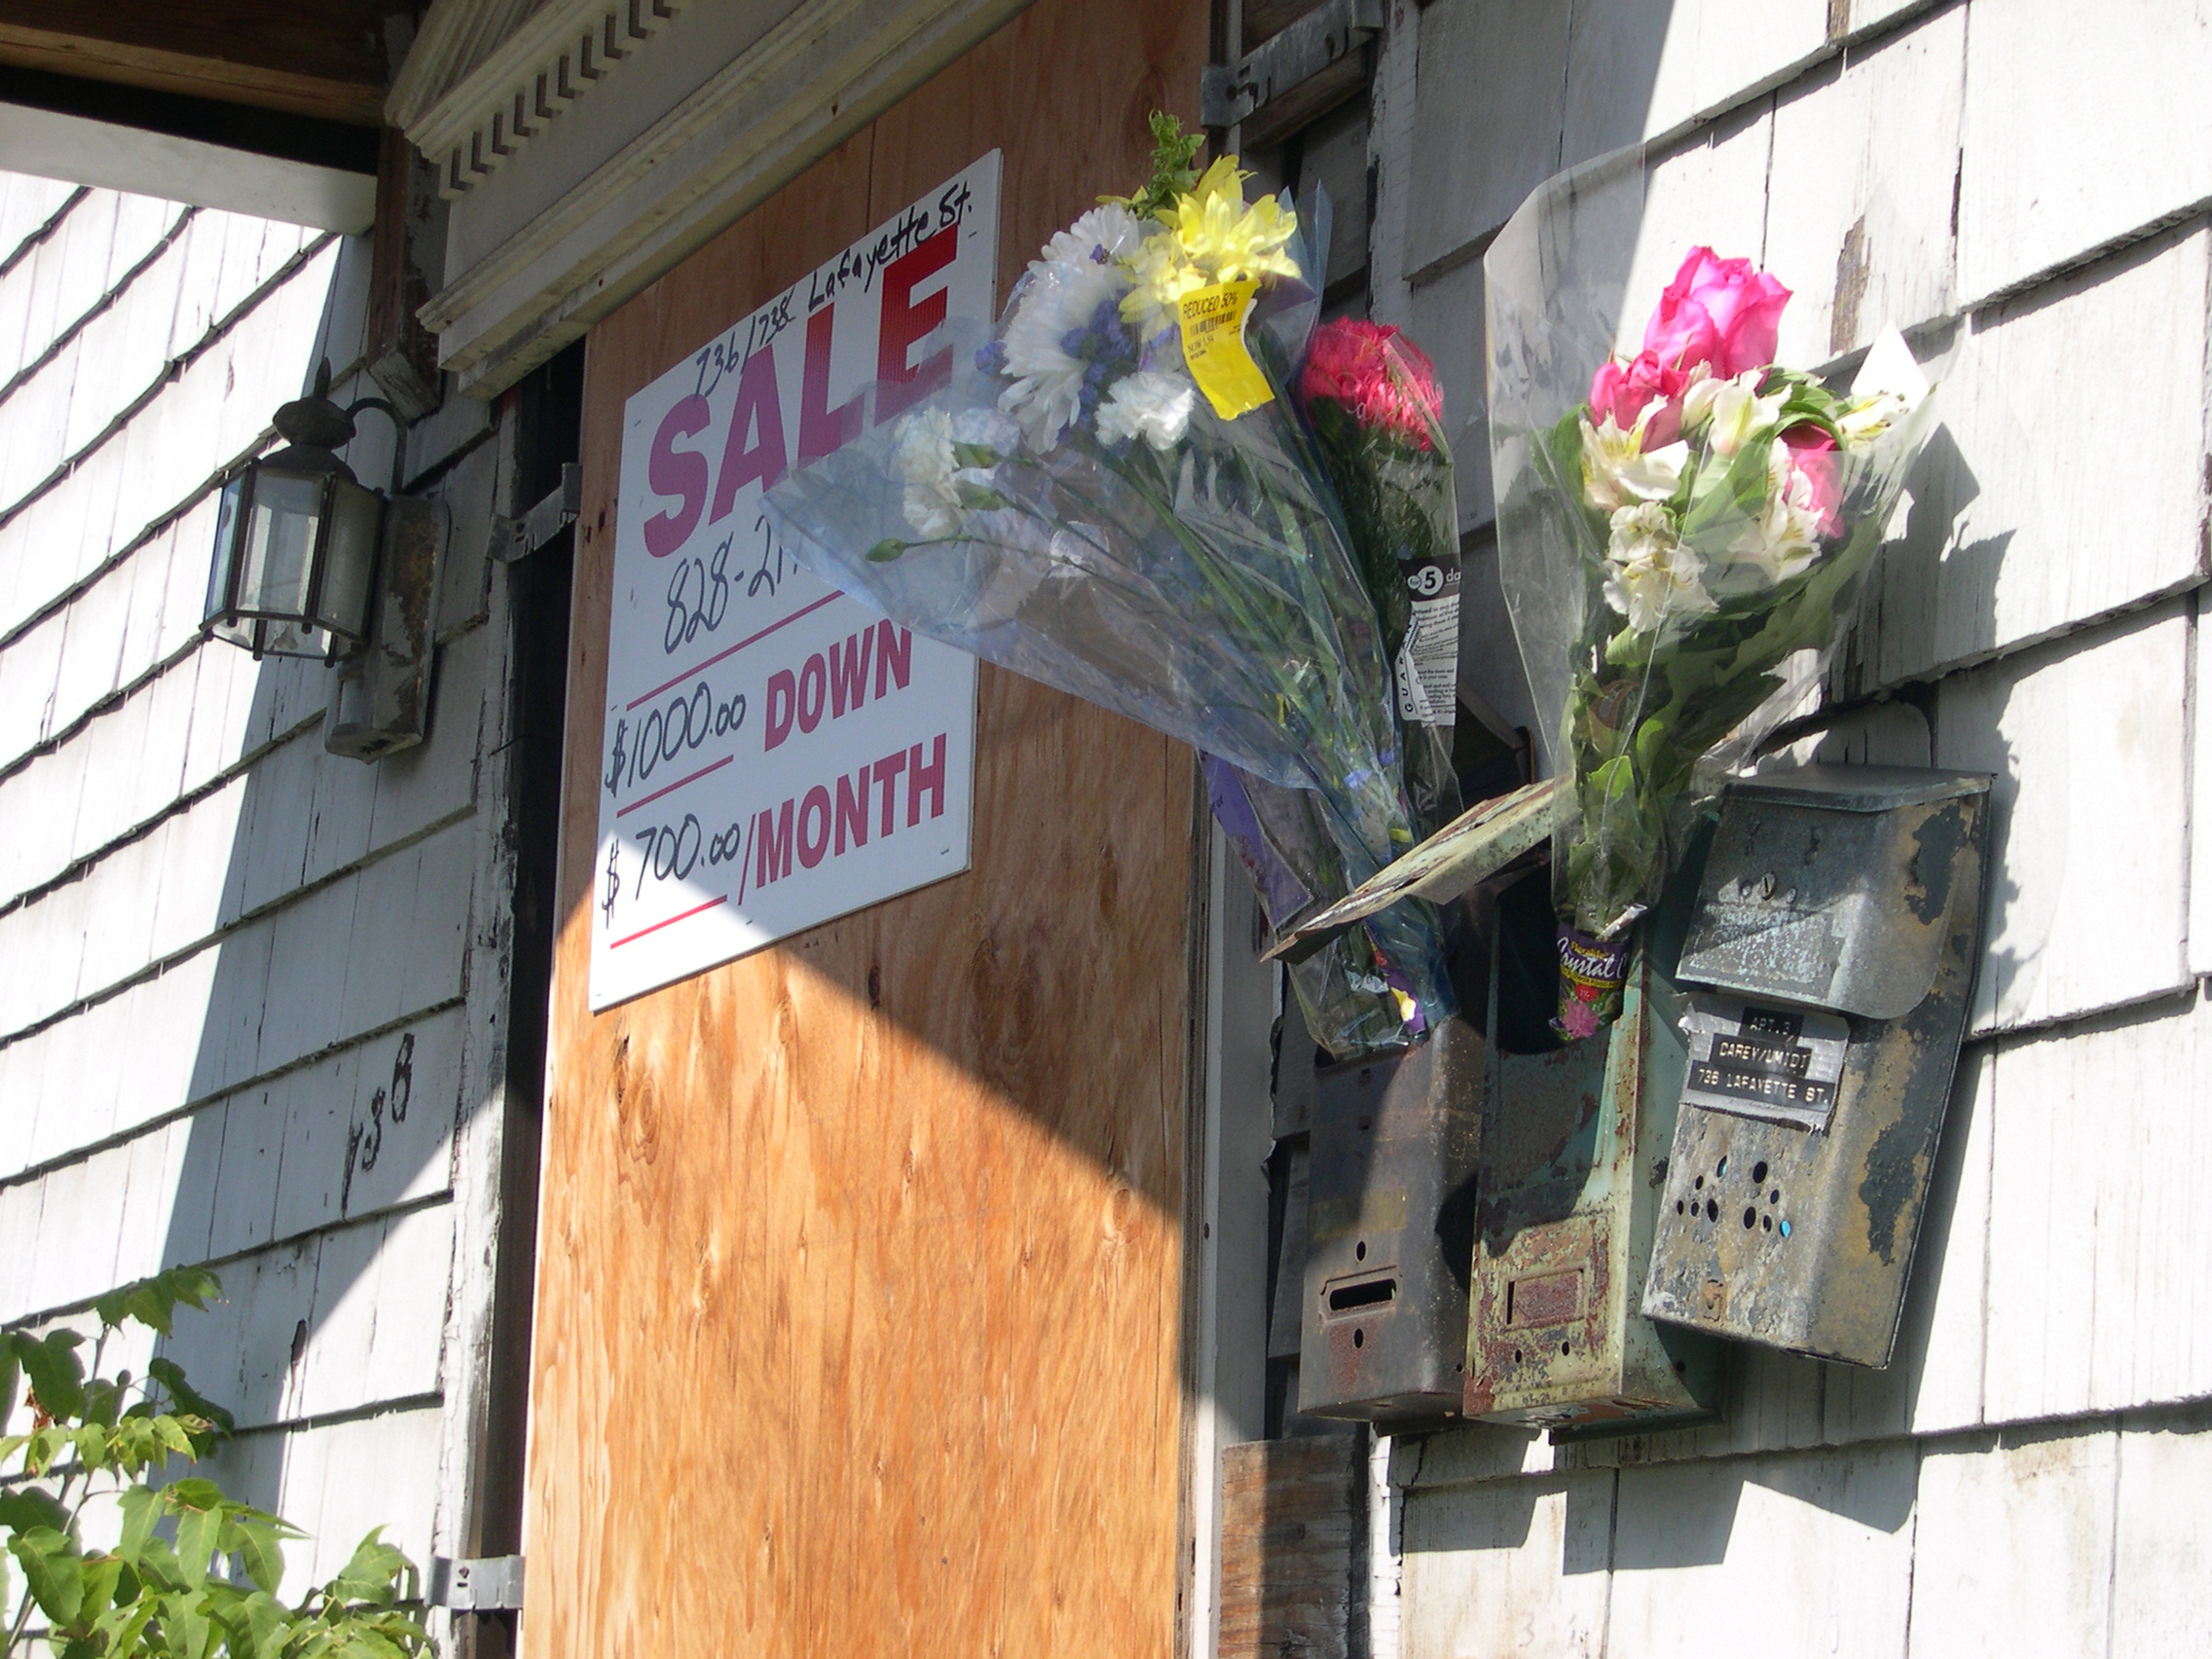 Reduced for Quick Sale , 2004; Discounted bouquets delivered to the boarded up houses that surround an upstate New York artists residency.